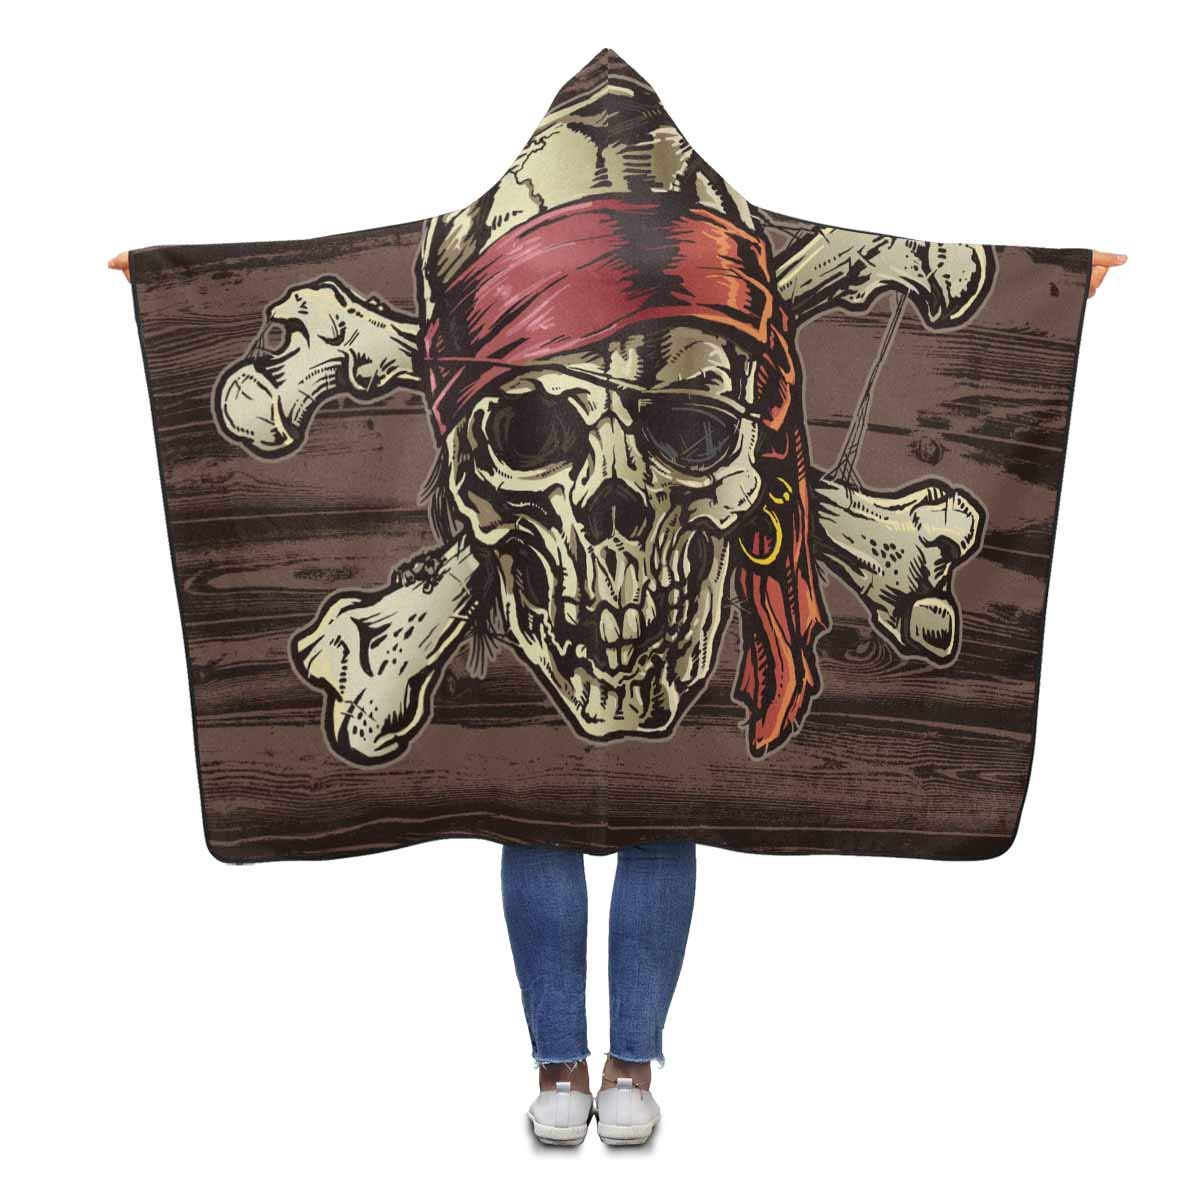 InterestPrint Pirate Skull Bandana Hooded Throw Blanket 80 x 56 inches Adults Blankets Throw Wrap by InterestPrint